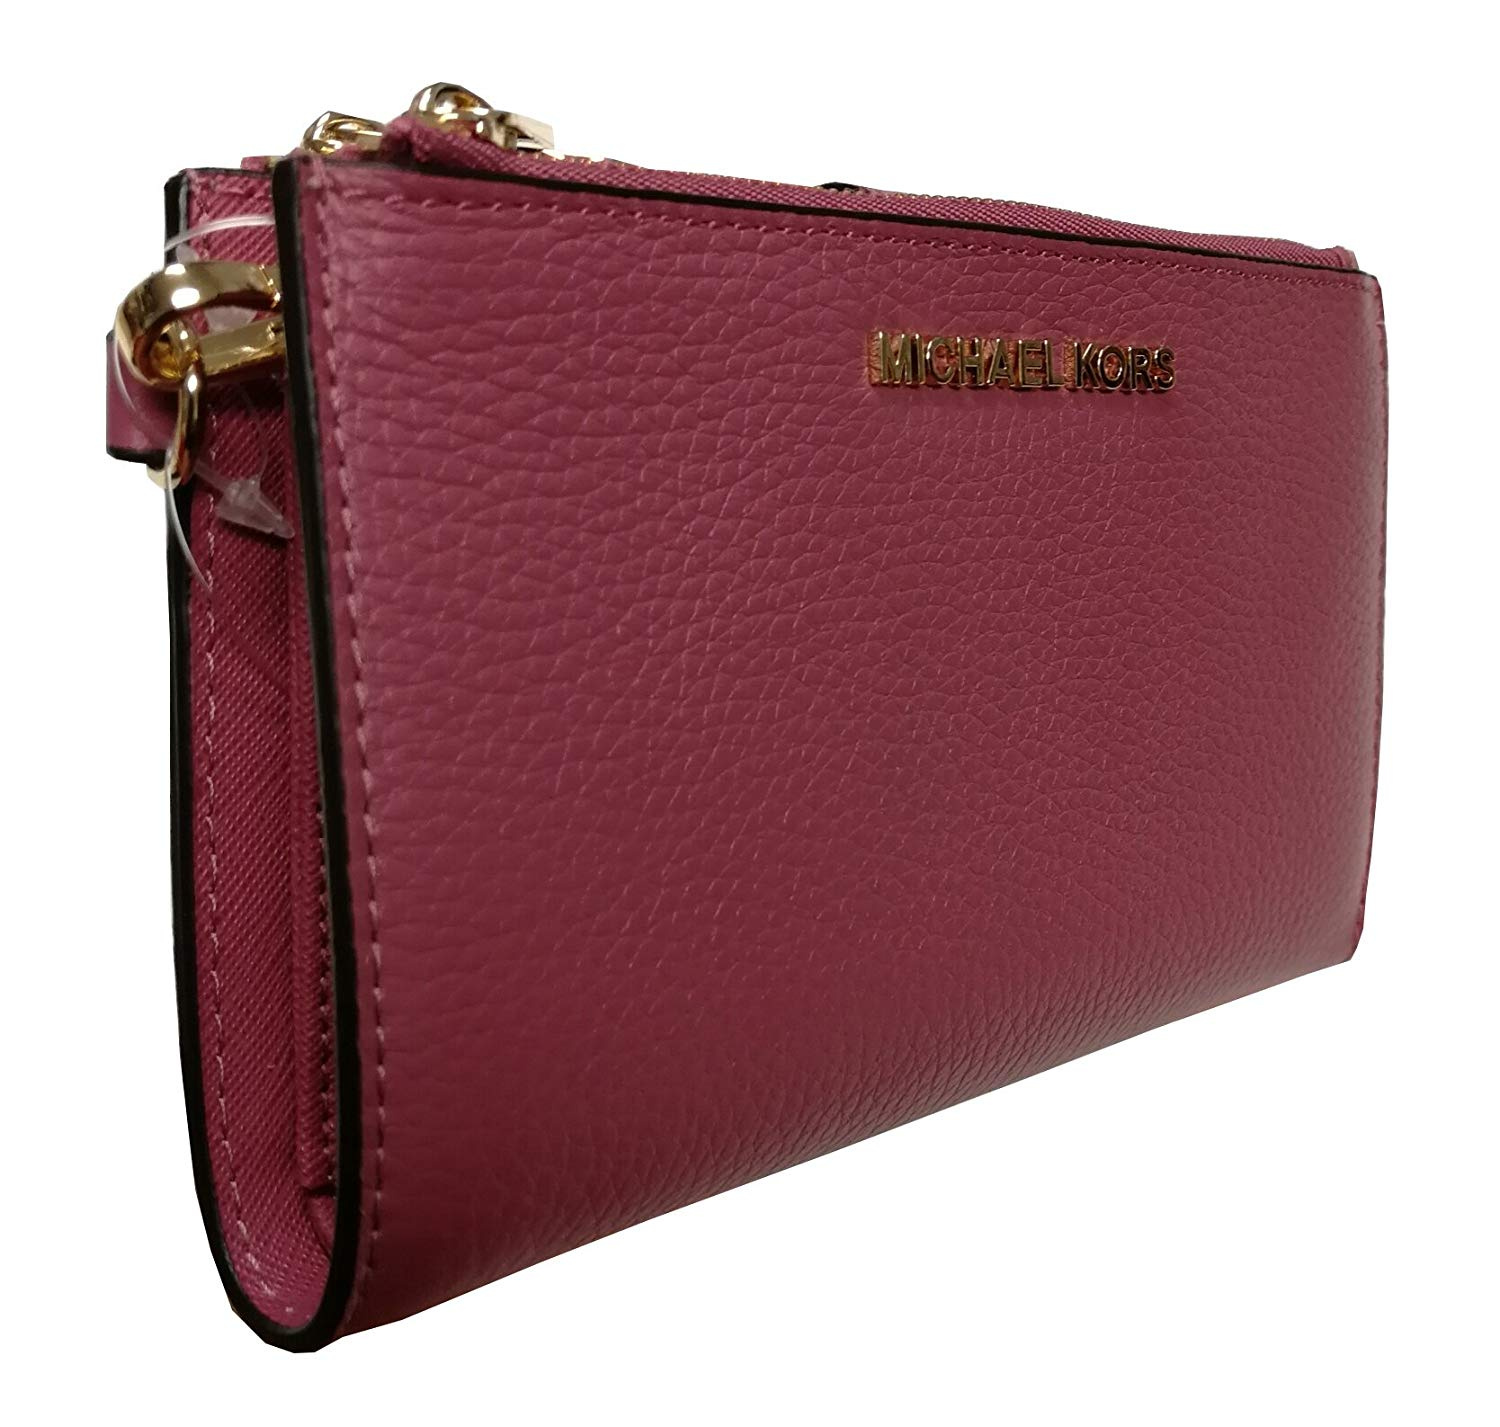 9e24b3edc3f2 Michael Kors Wallet Bags: Buy Online from Fishpond.co.nz